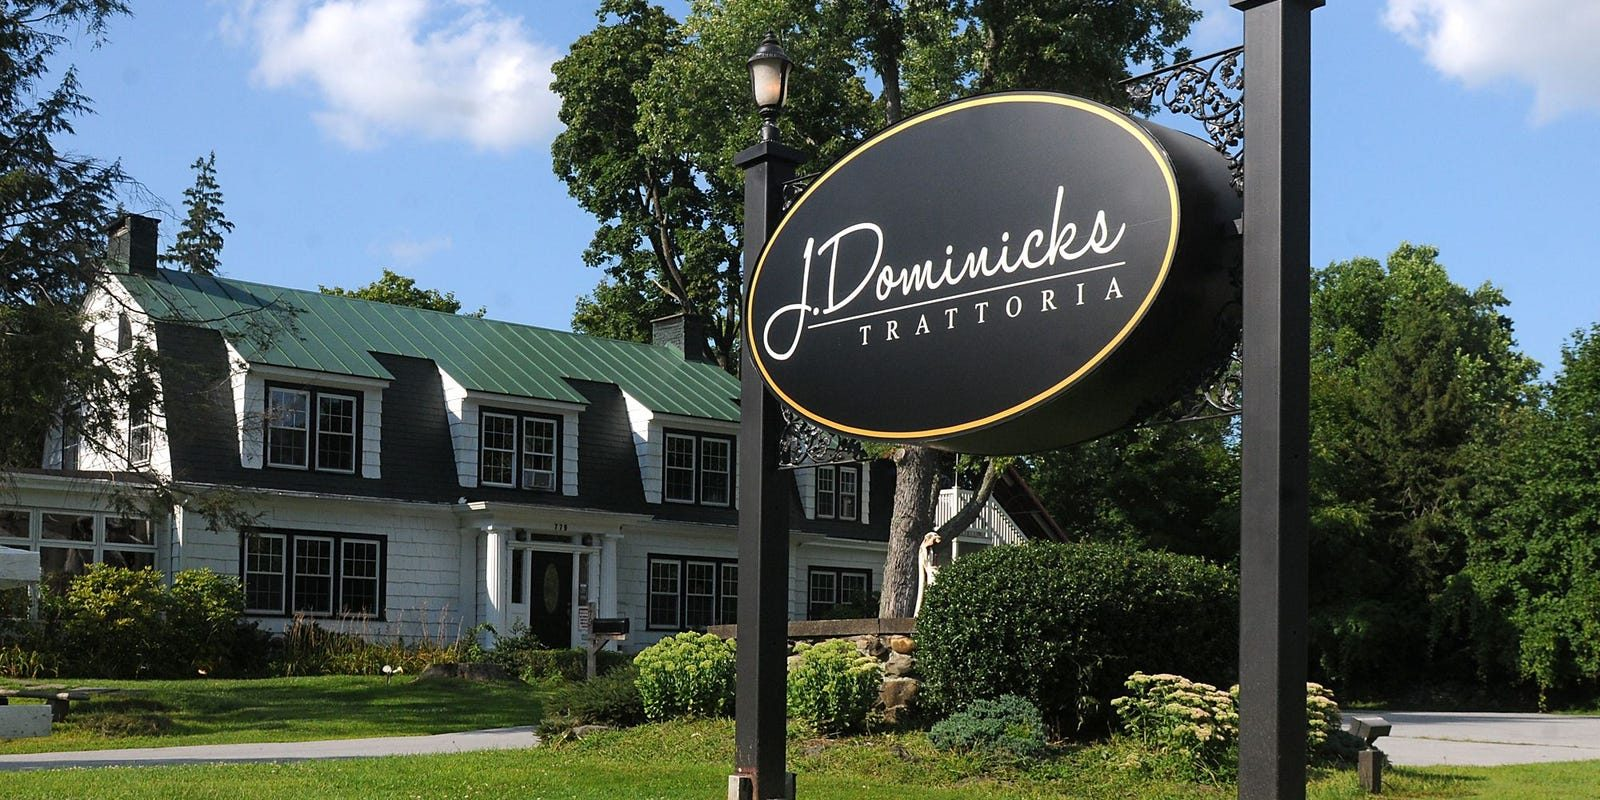 J Dominick's Trattoria Psychic Medium Event  Poughkeepsie, New York  Thursday February 25th 2021